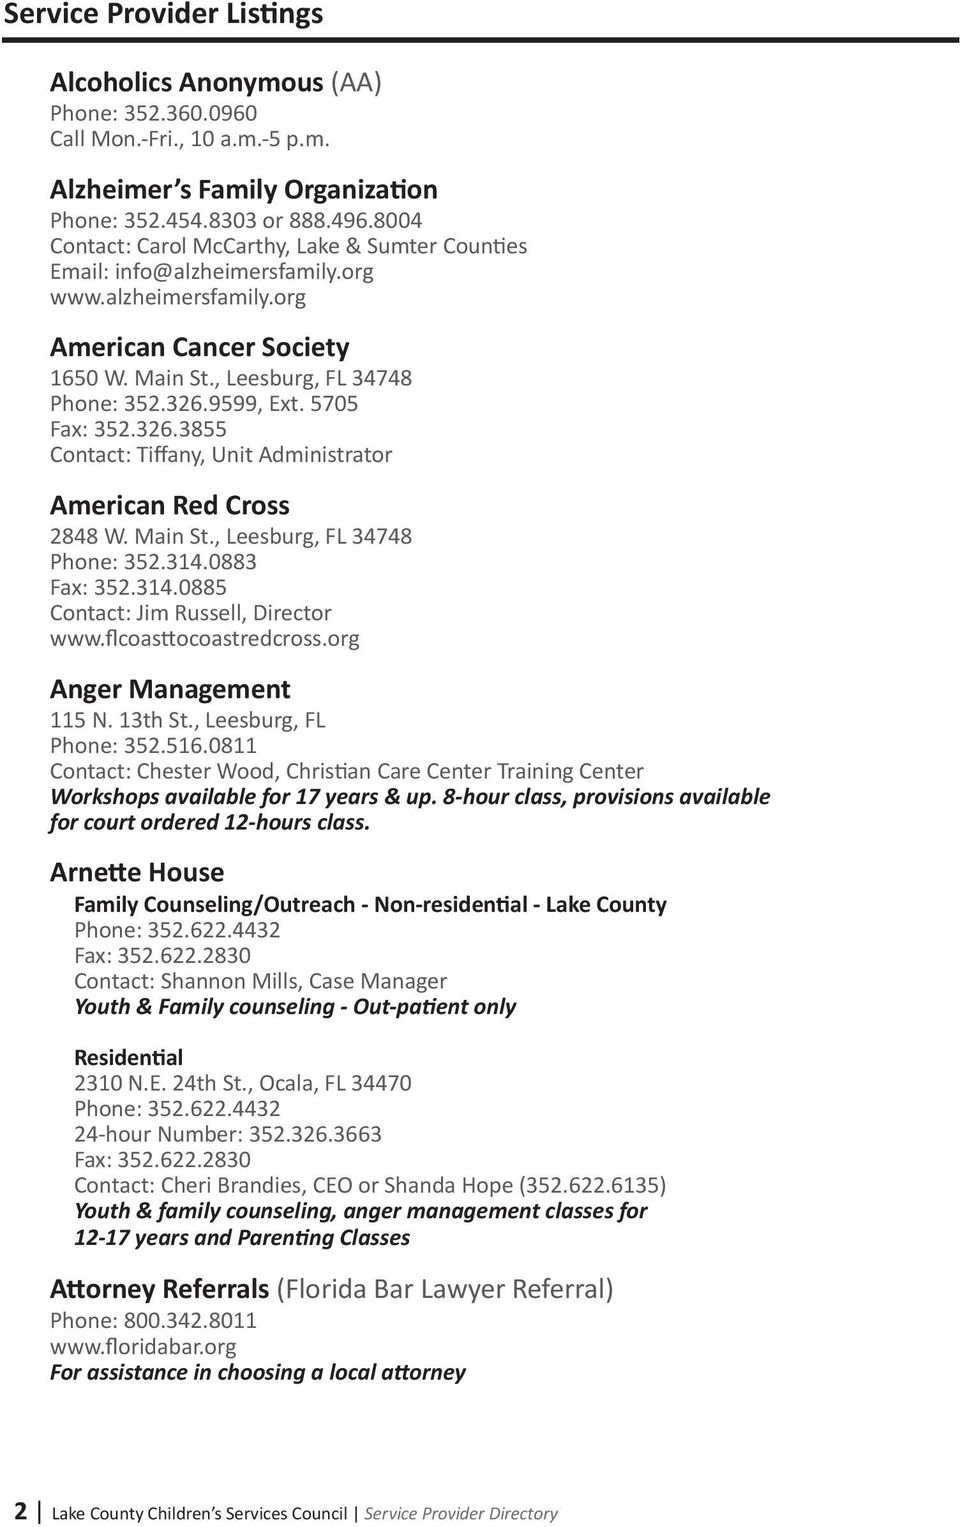 5705 Fax: 352.326.3855 Contact: Tiffany, Unit Administrator American Red Cross 2848 W. Main St., Leesburg, FL 34748 Phone: 352.314.0883 Fax: 352.314.0885 Contact: Jim Russell, Director www.